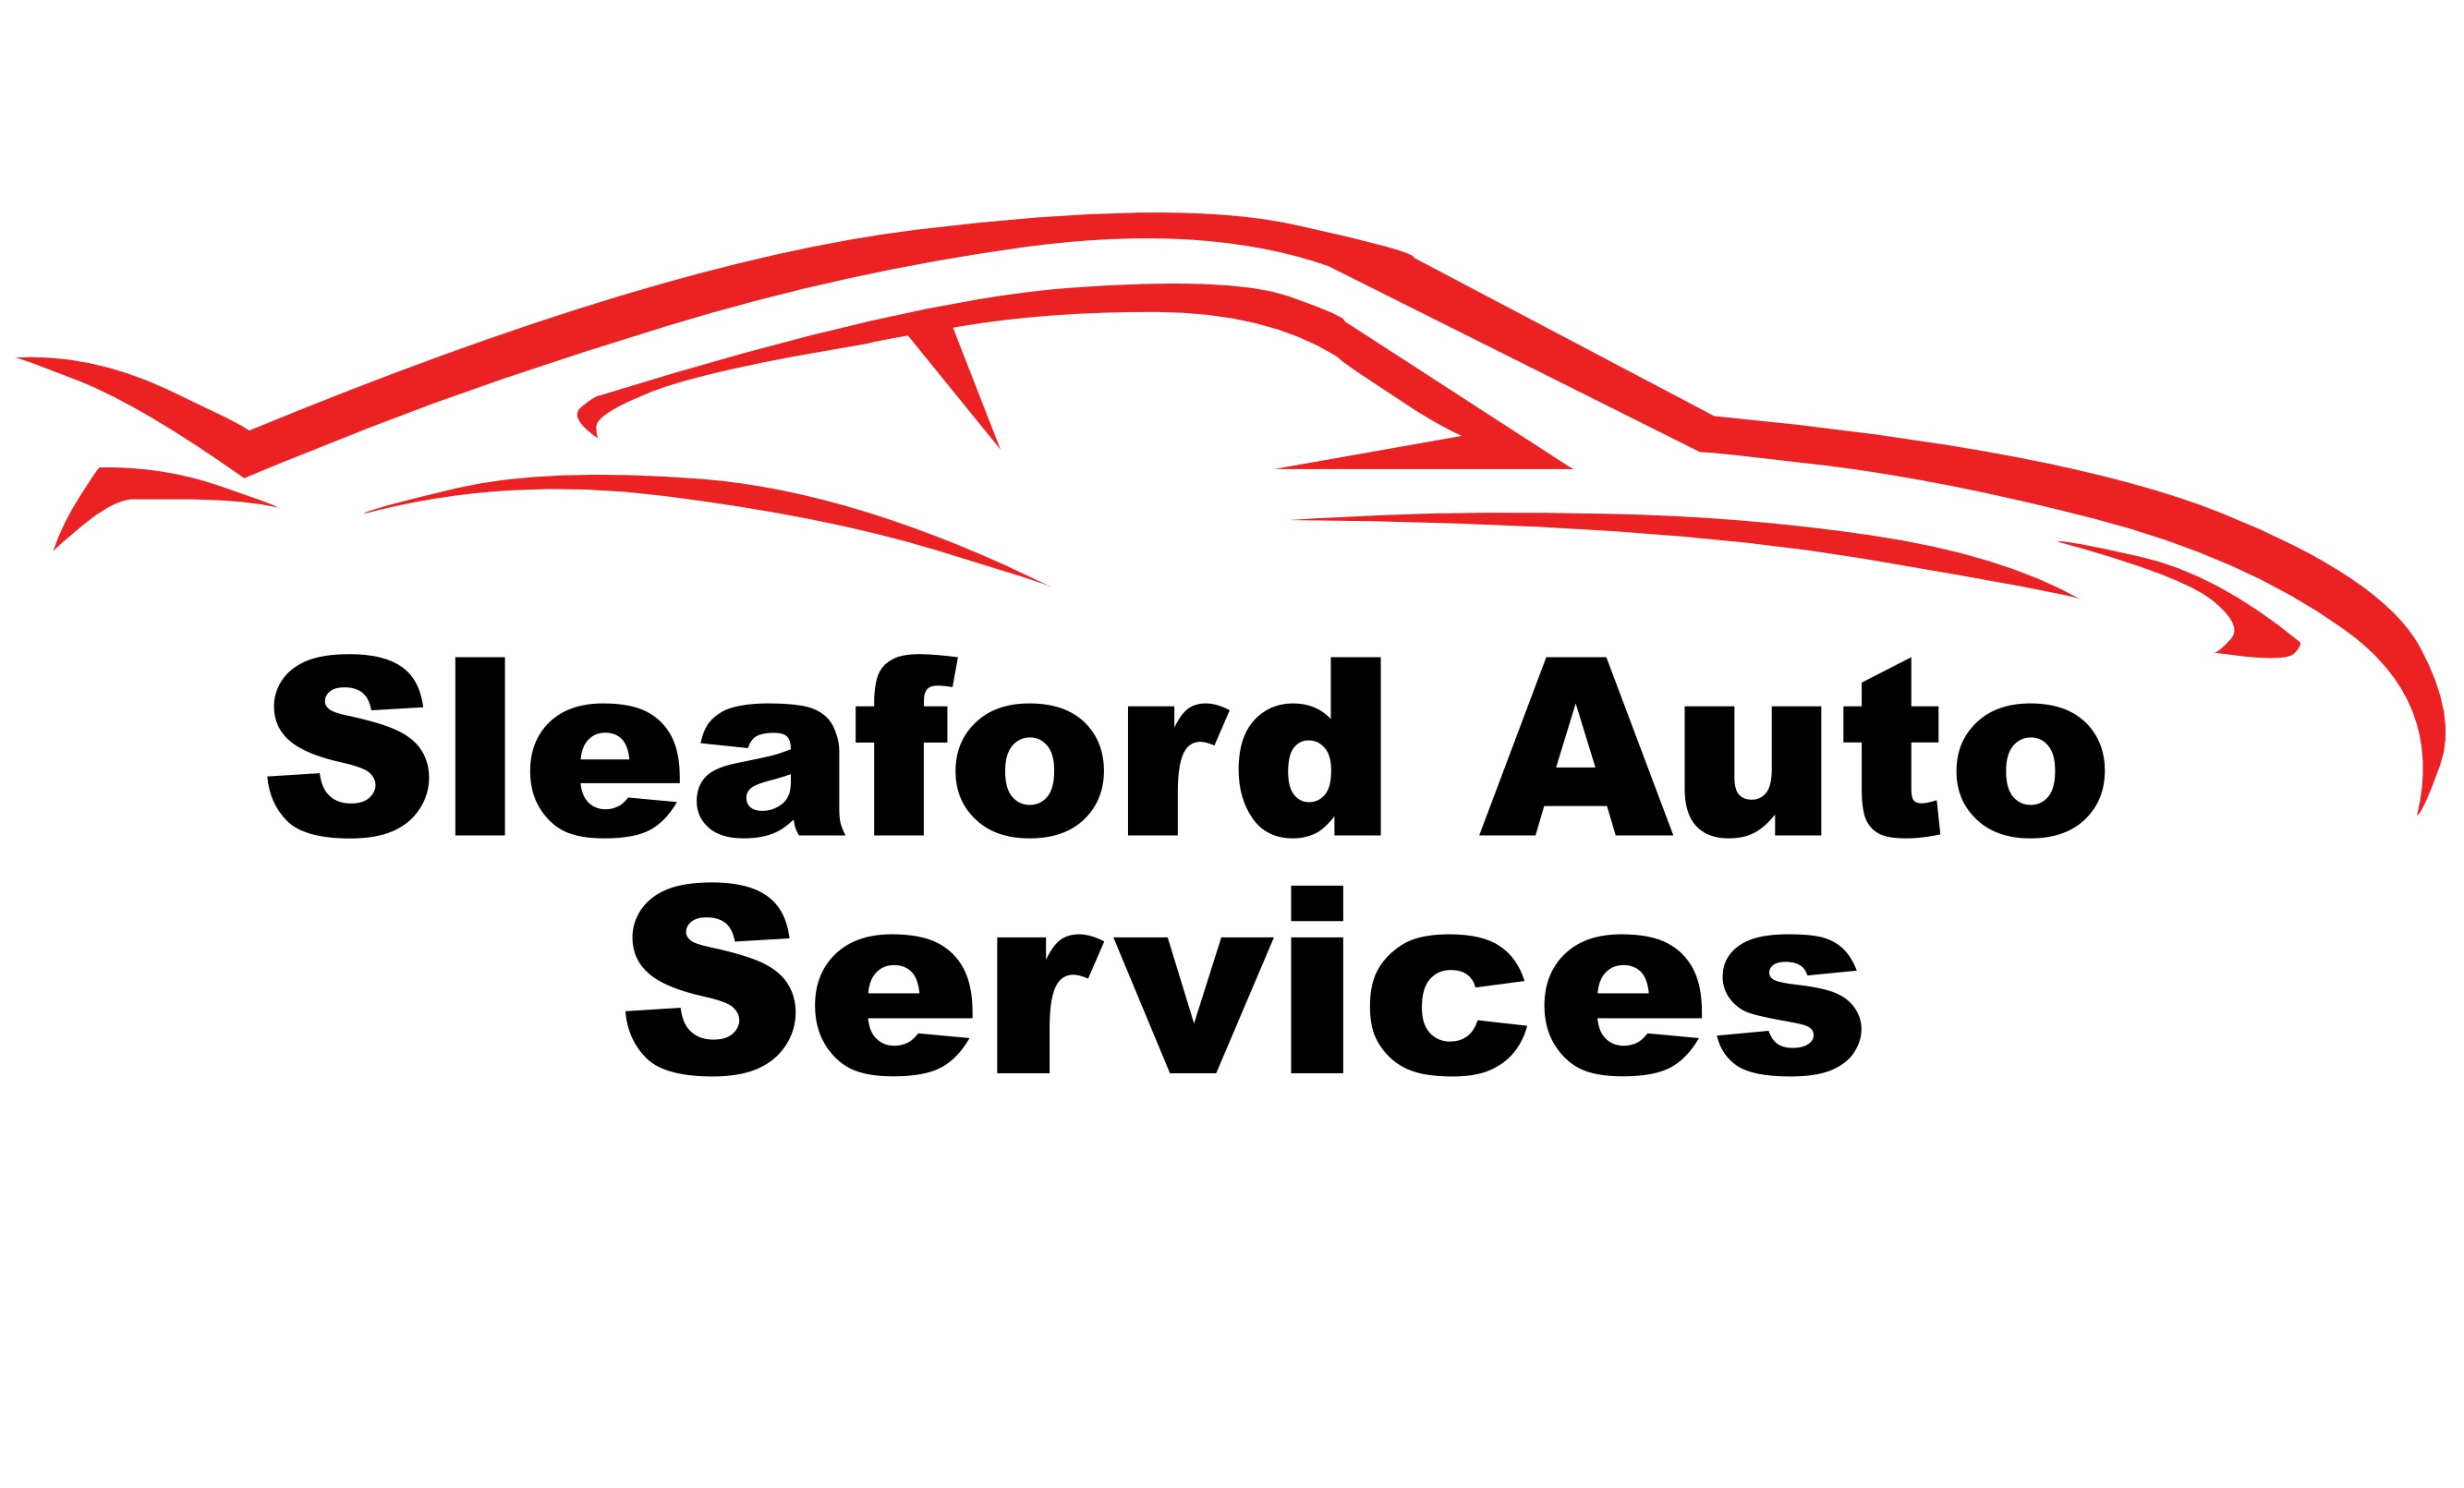 Sleaford Auto Services Ltd Offers Logo